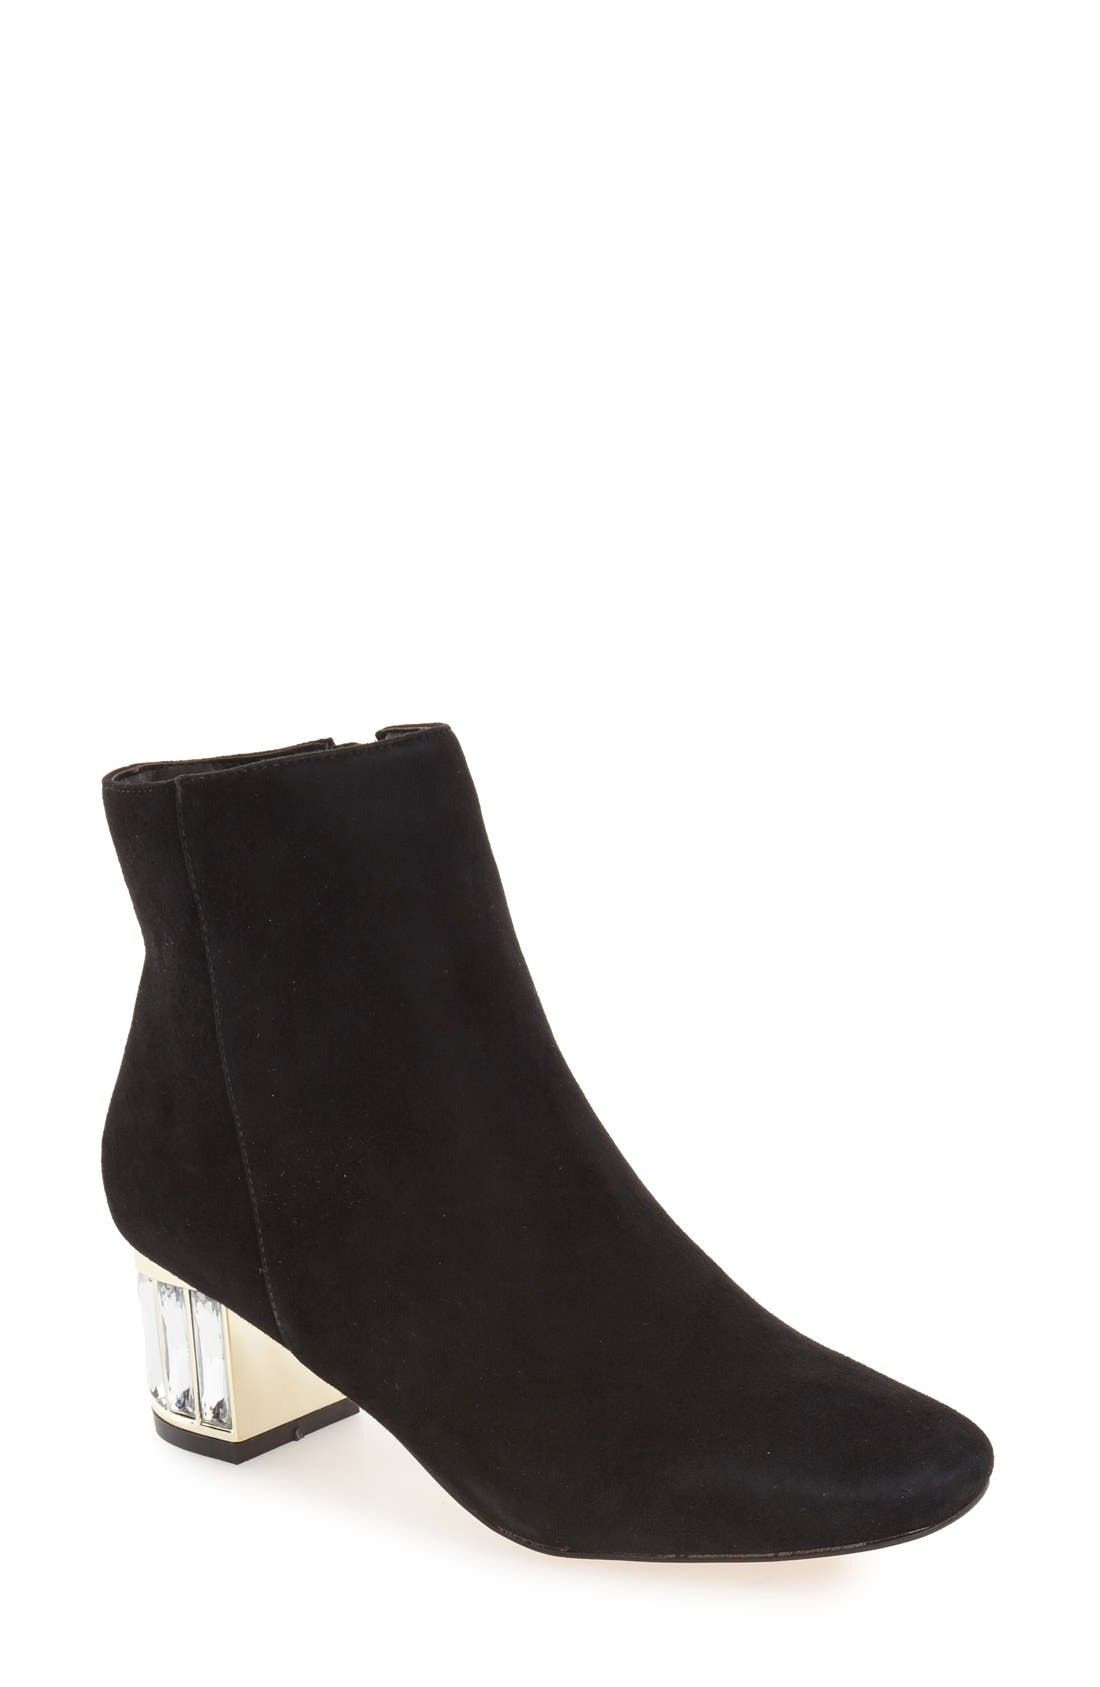 'Orion' Crystal Block Heel Bootie,                             Main thumbnail 1, color,                             003